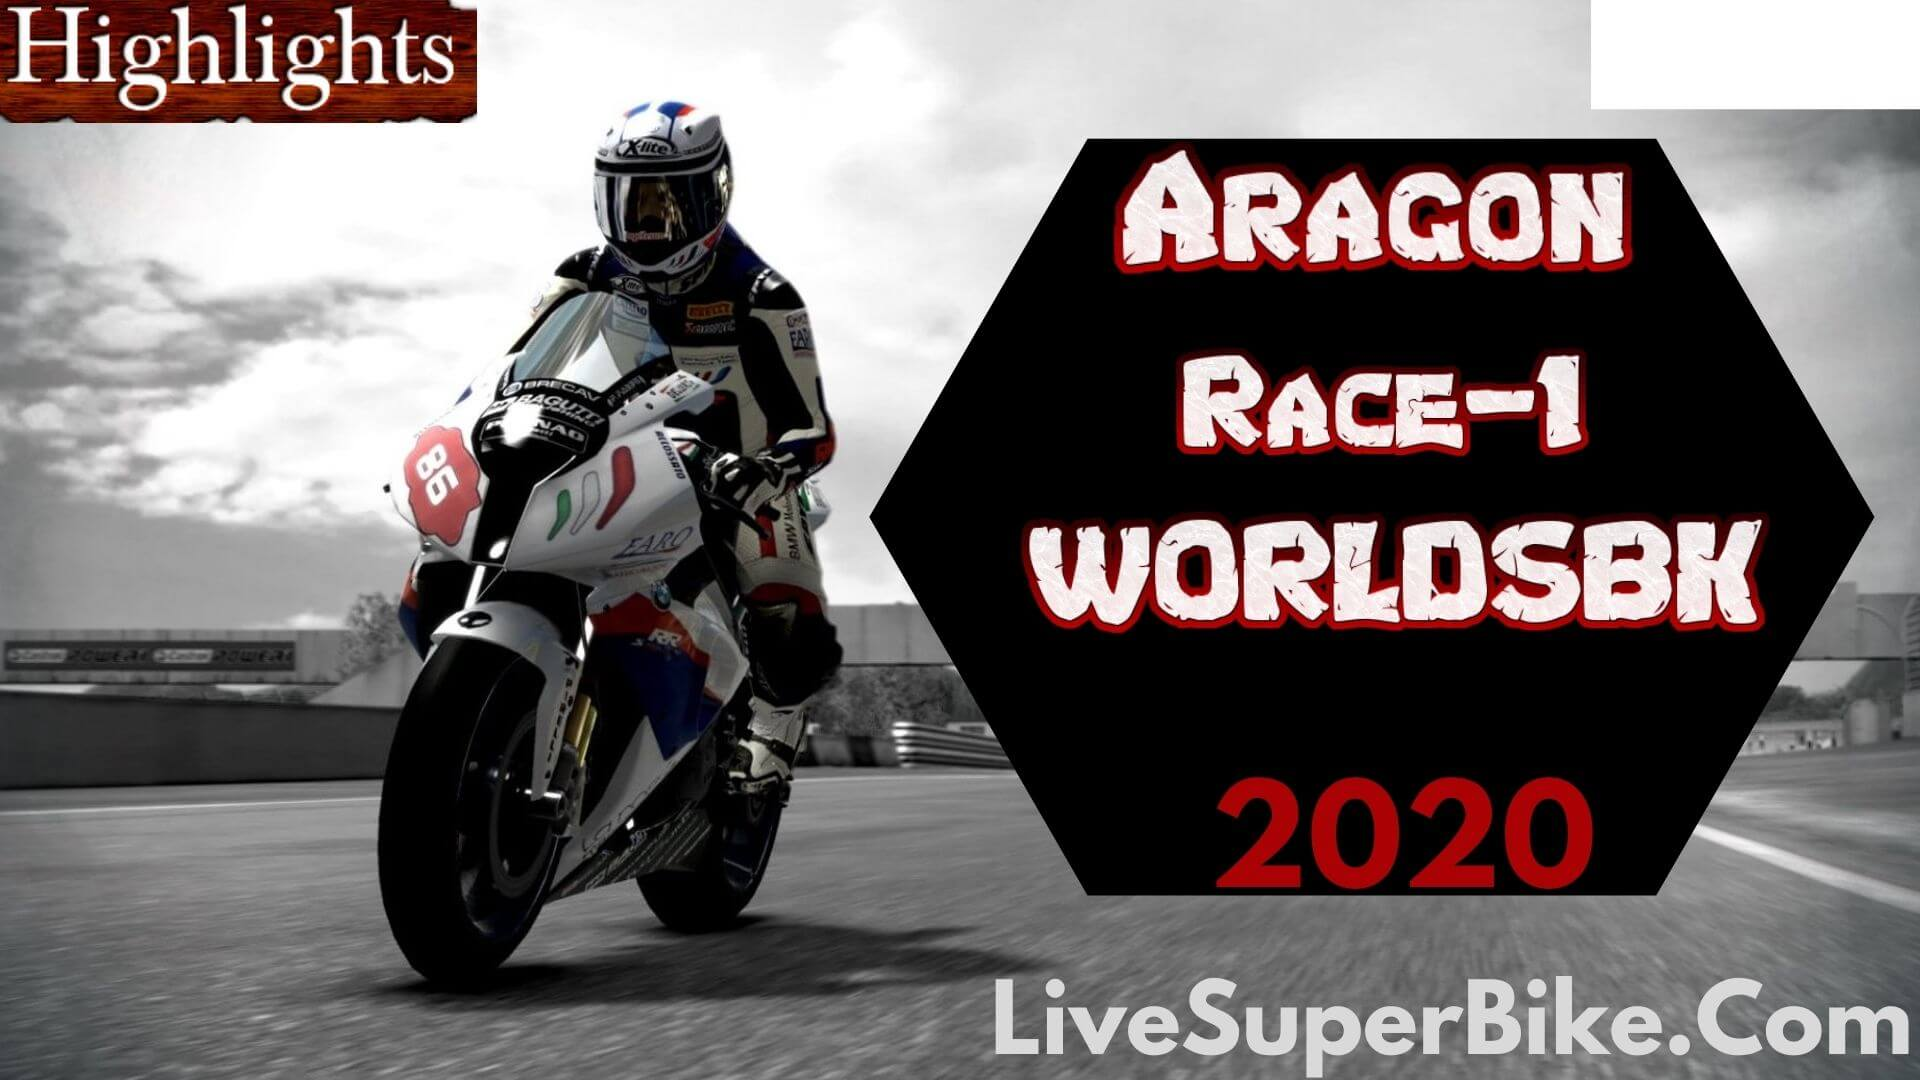 Aragon WorldSBK Race 1 Highlights 2020